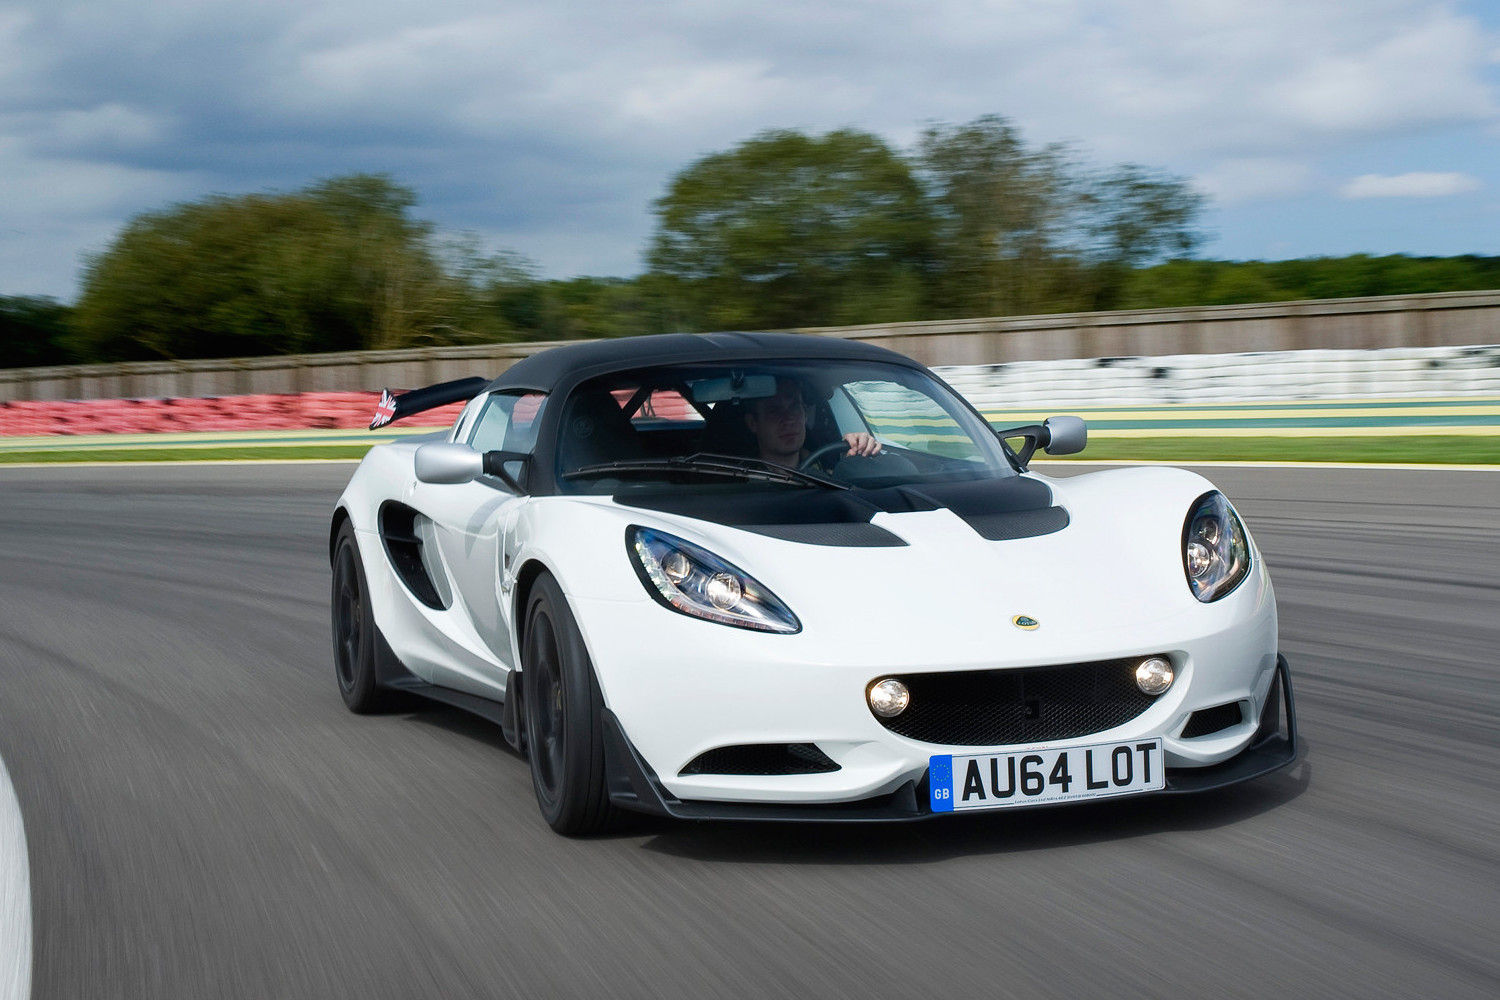 Perfect The Lotus Elise Will Return In 2020 With A Focus On Speed Agility